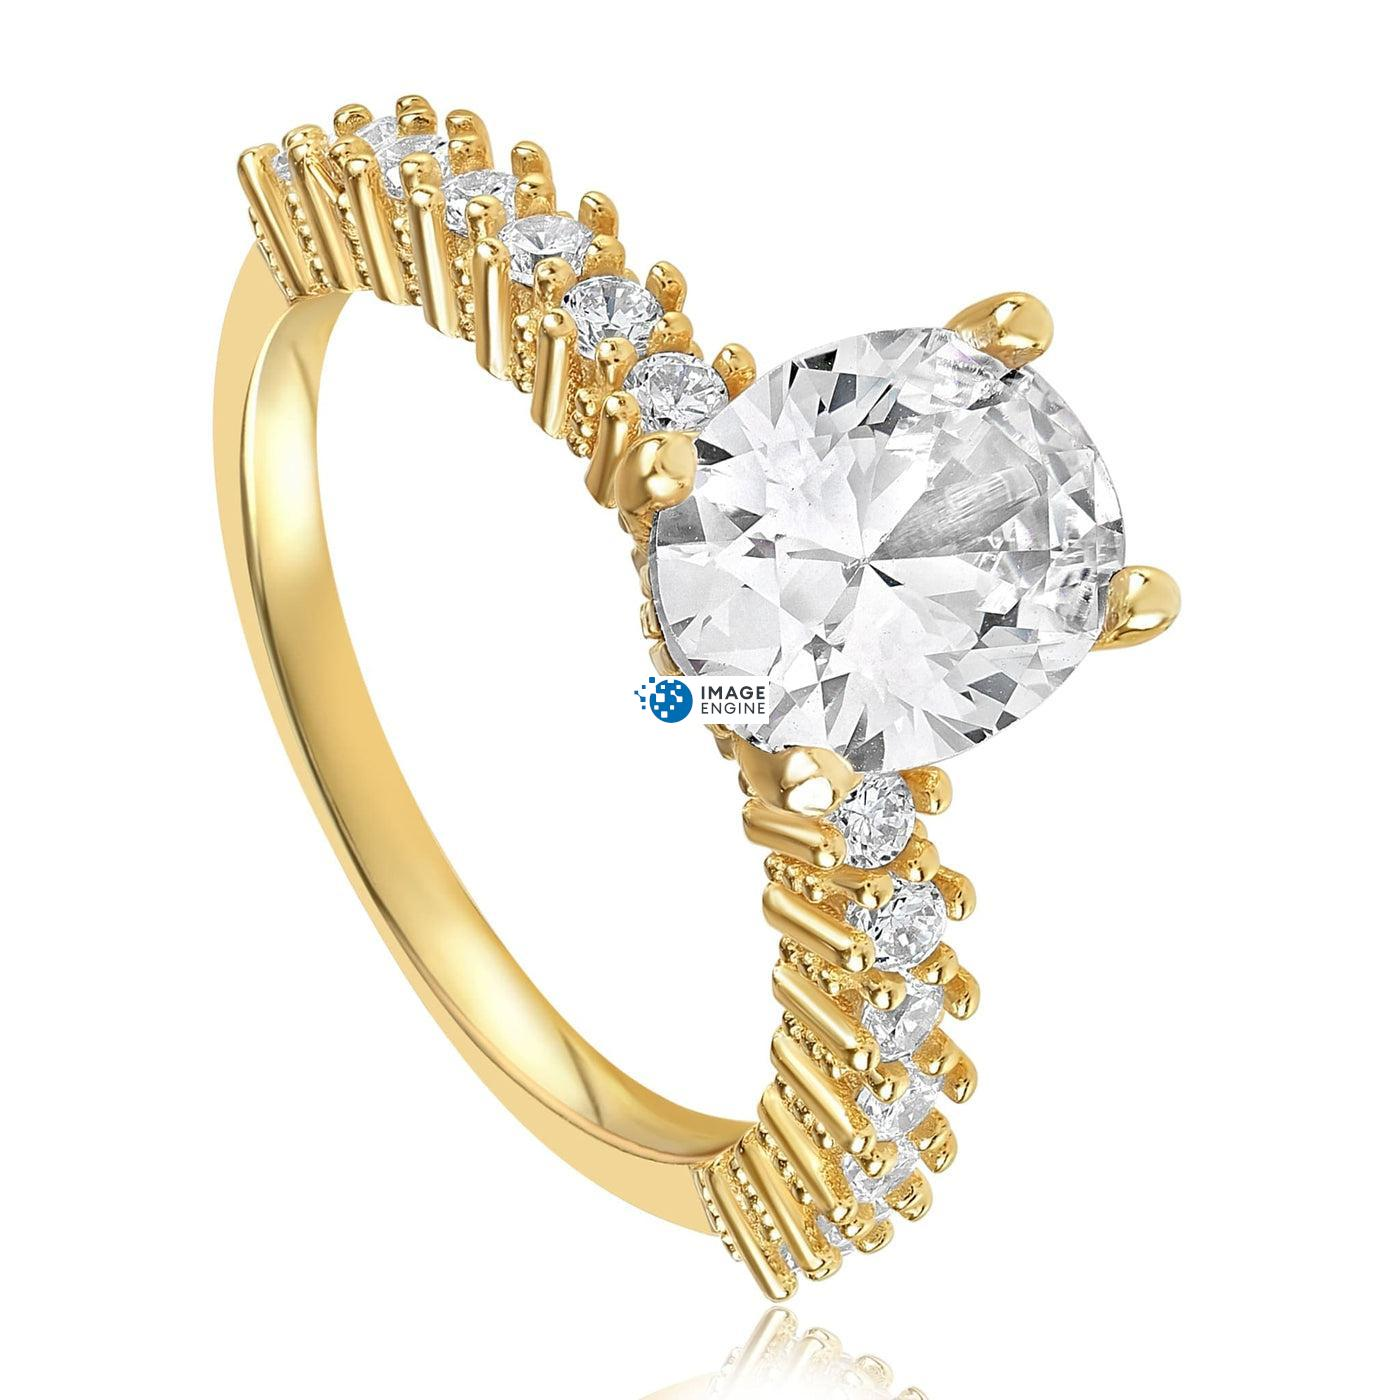 Cara Zirconia Ring - Three Quarter View - 18K Yellow Gold Vermeil